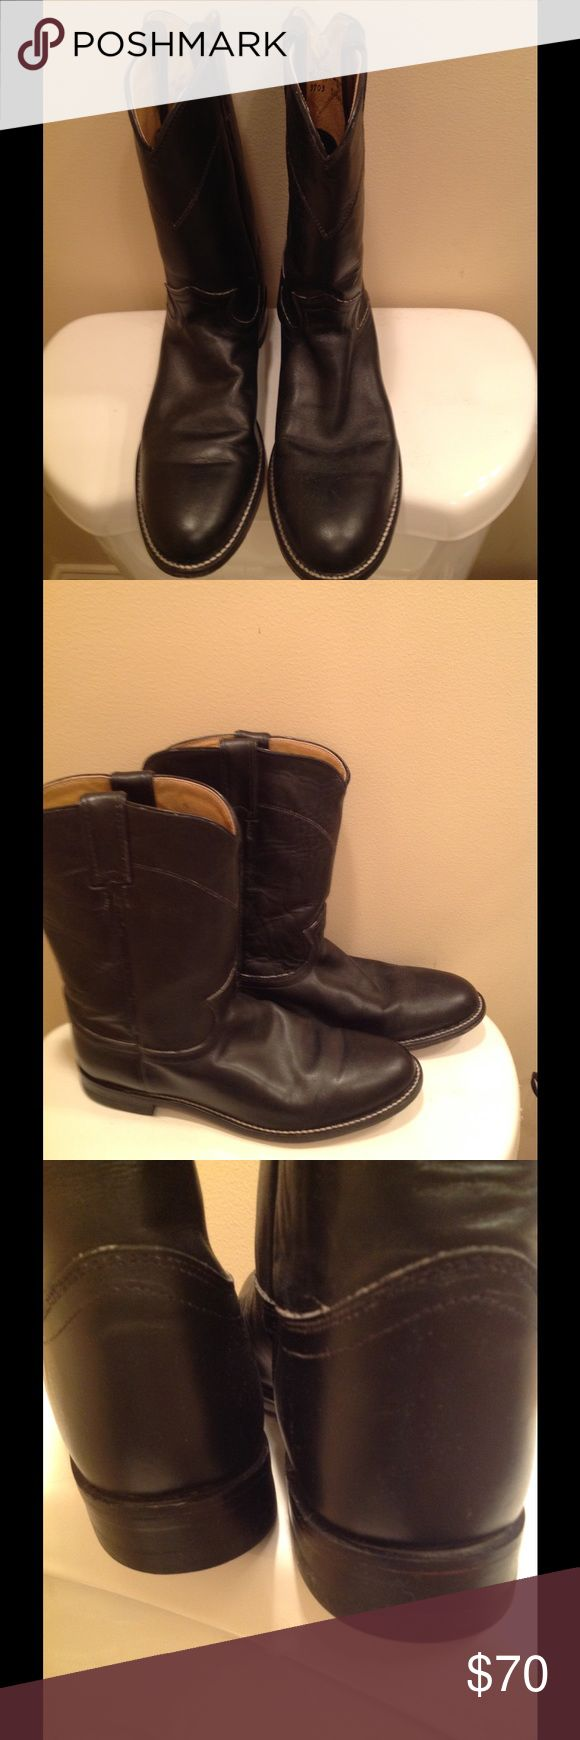 Spotted while shopping on Poshmark: JUSTIN ROPER BOOTS! #poshmark #fashion #shopping #style #Justin #Shoes